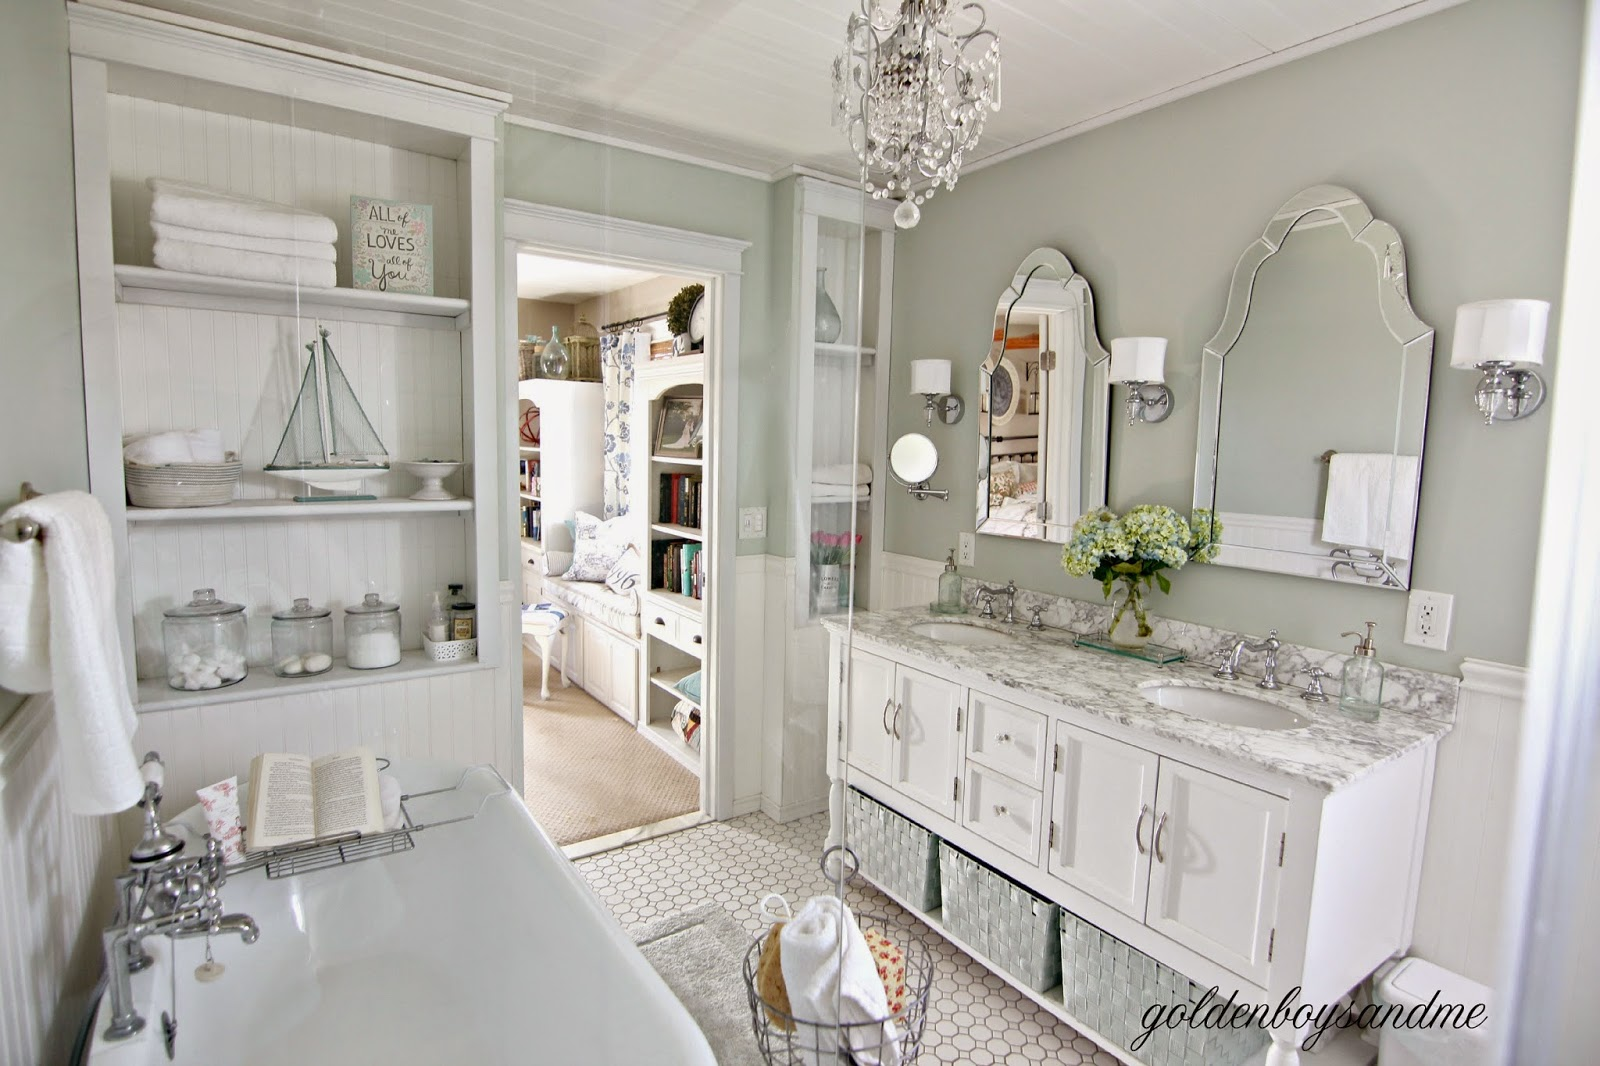 DIY master bathroom with pedestal tub, chandelier, and built ins-www.goldenboysandme.com